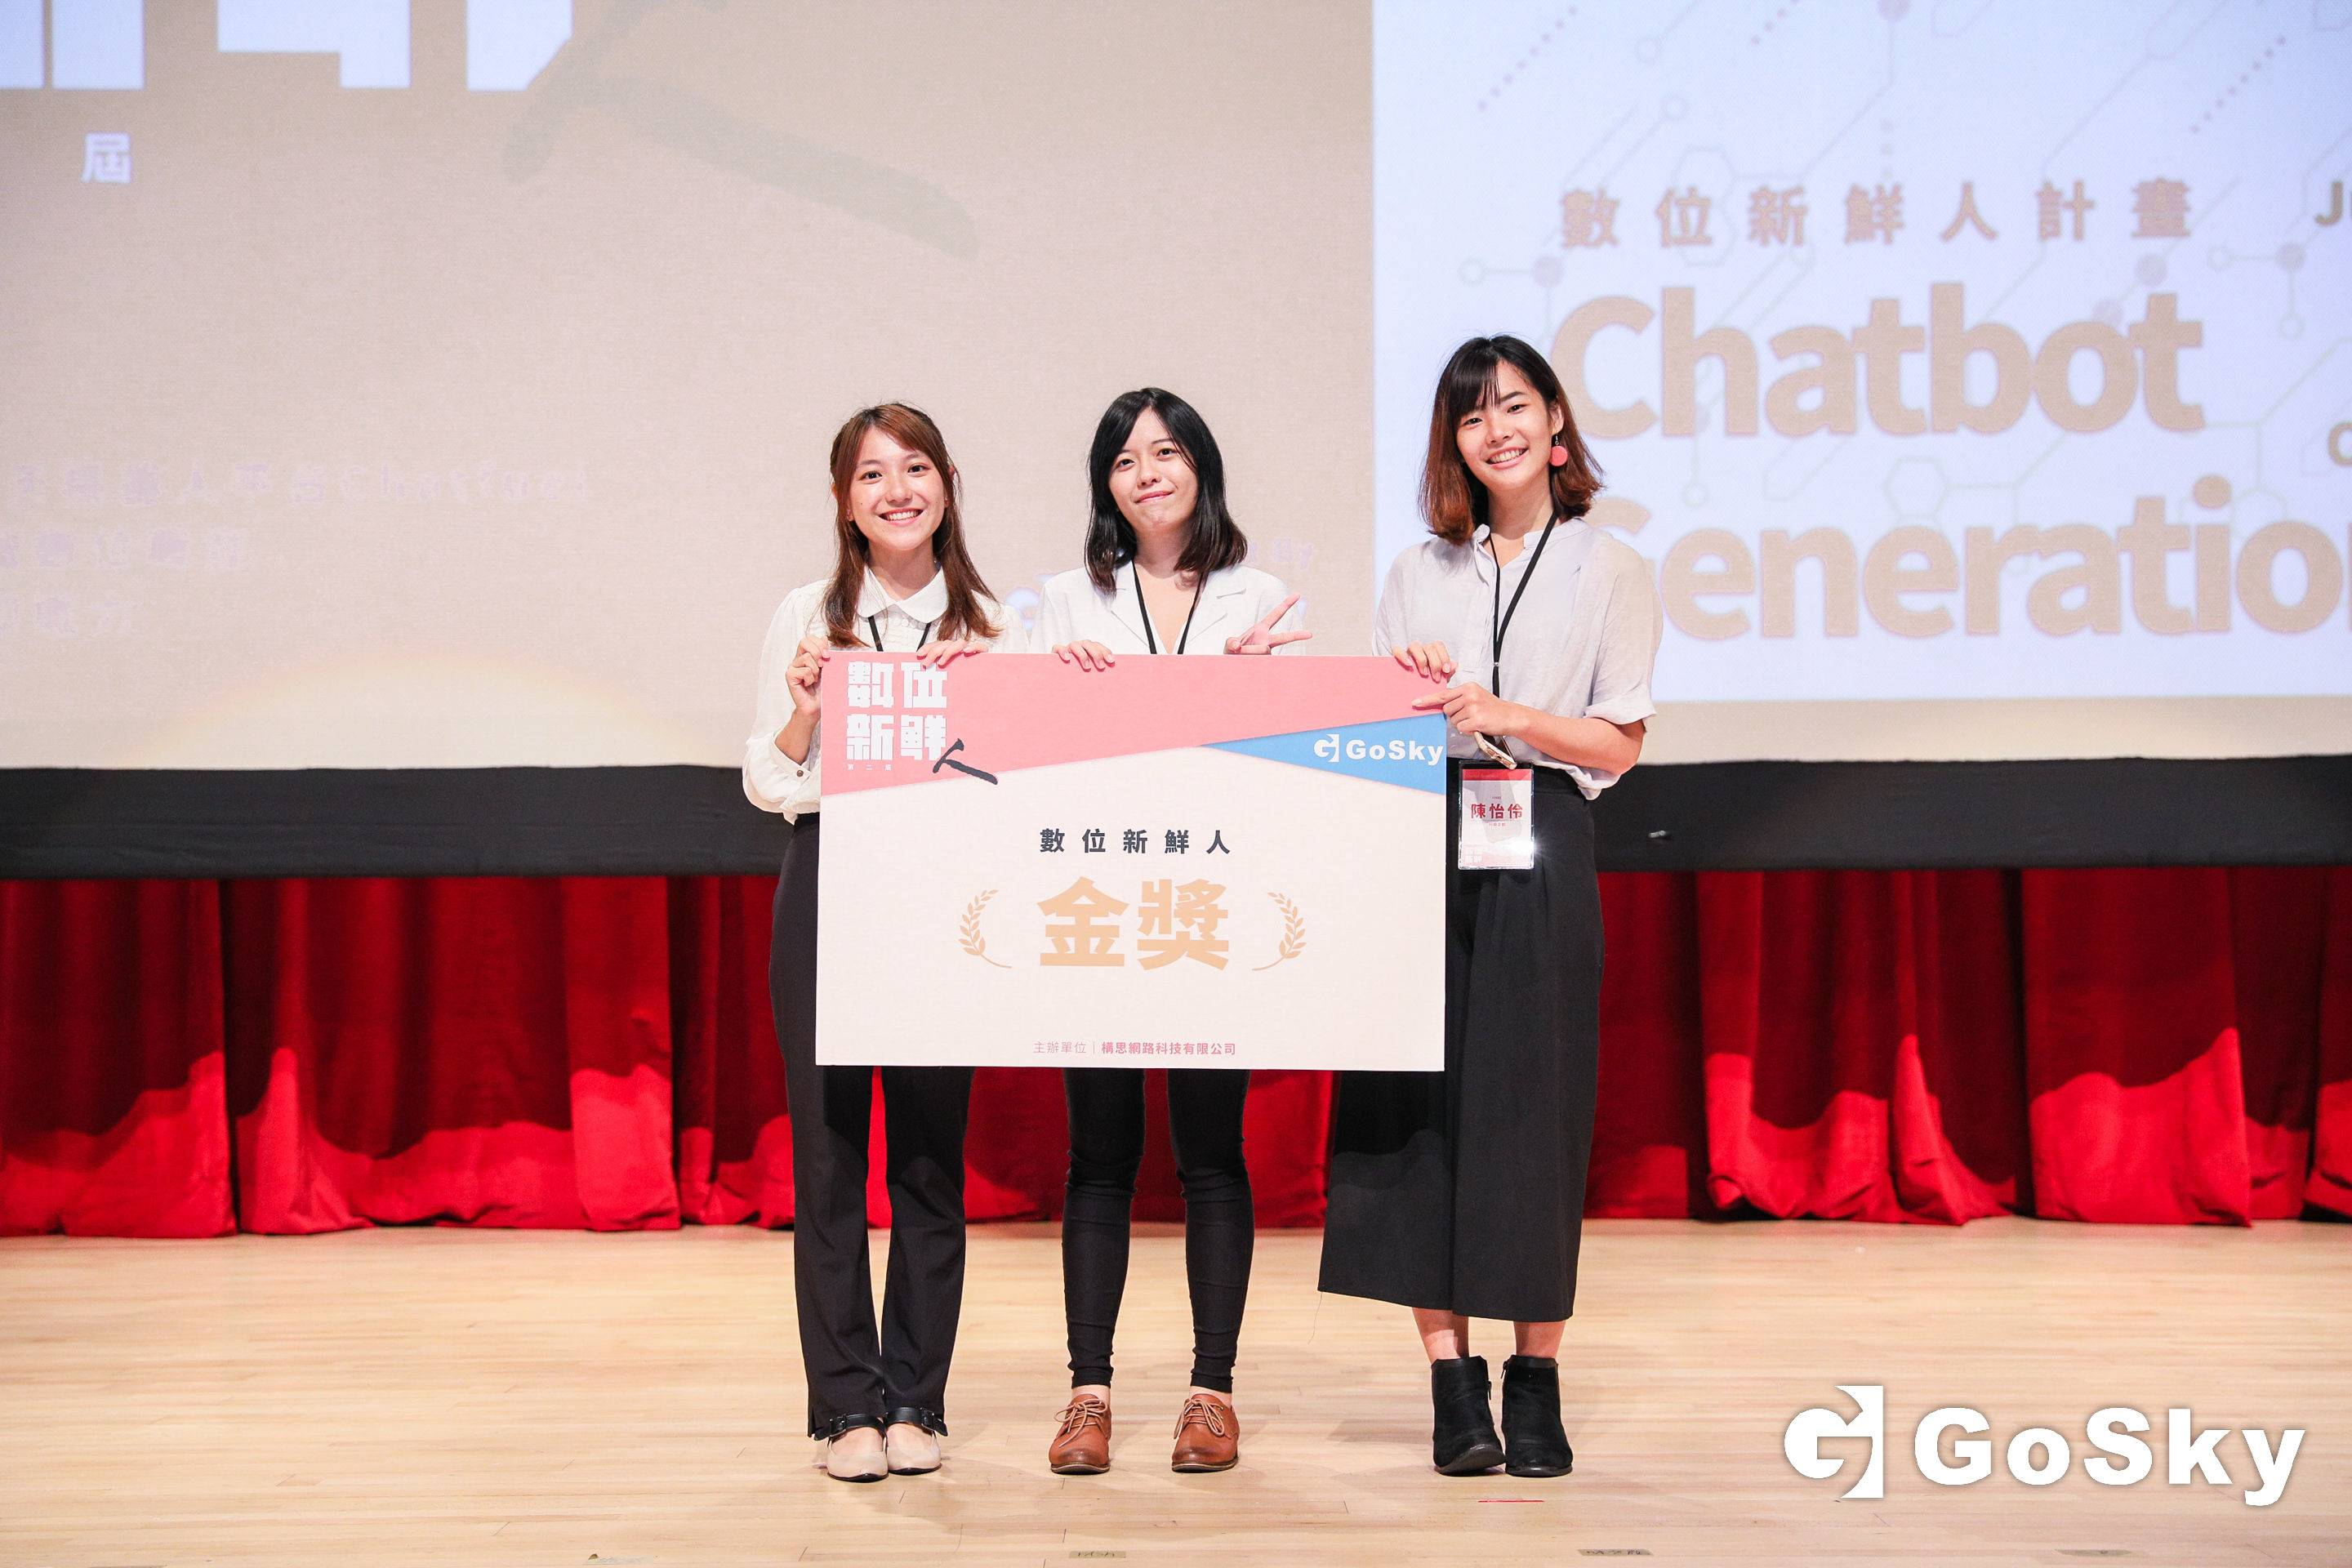 Agency Holds National Competition to Teach University Students to Build Bots